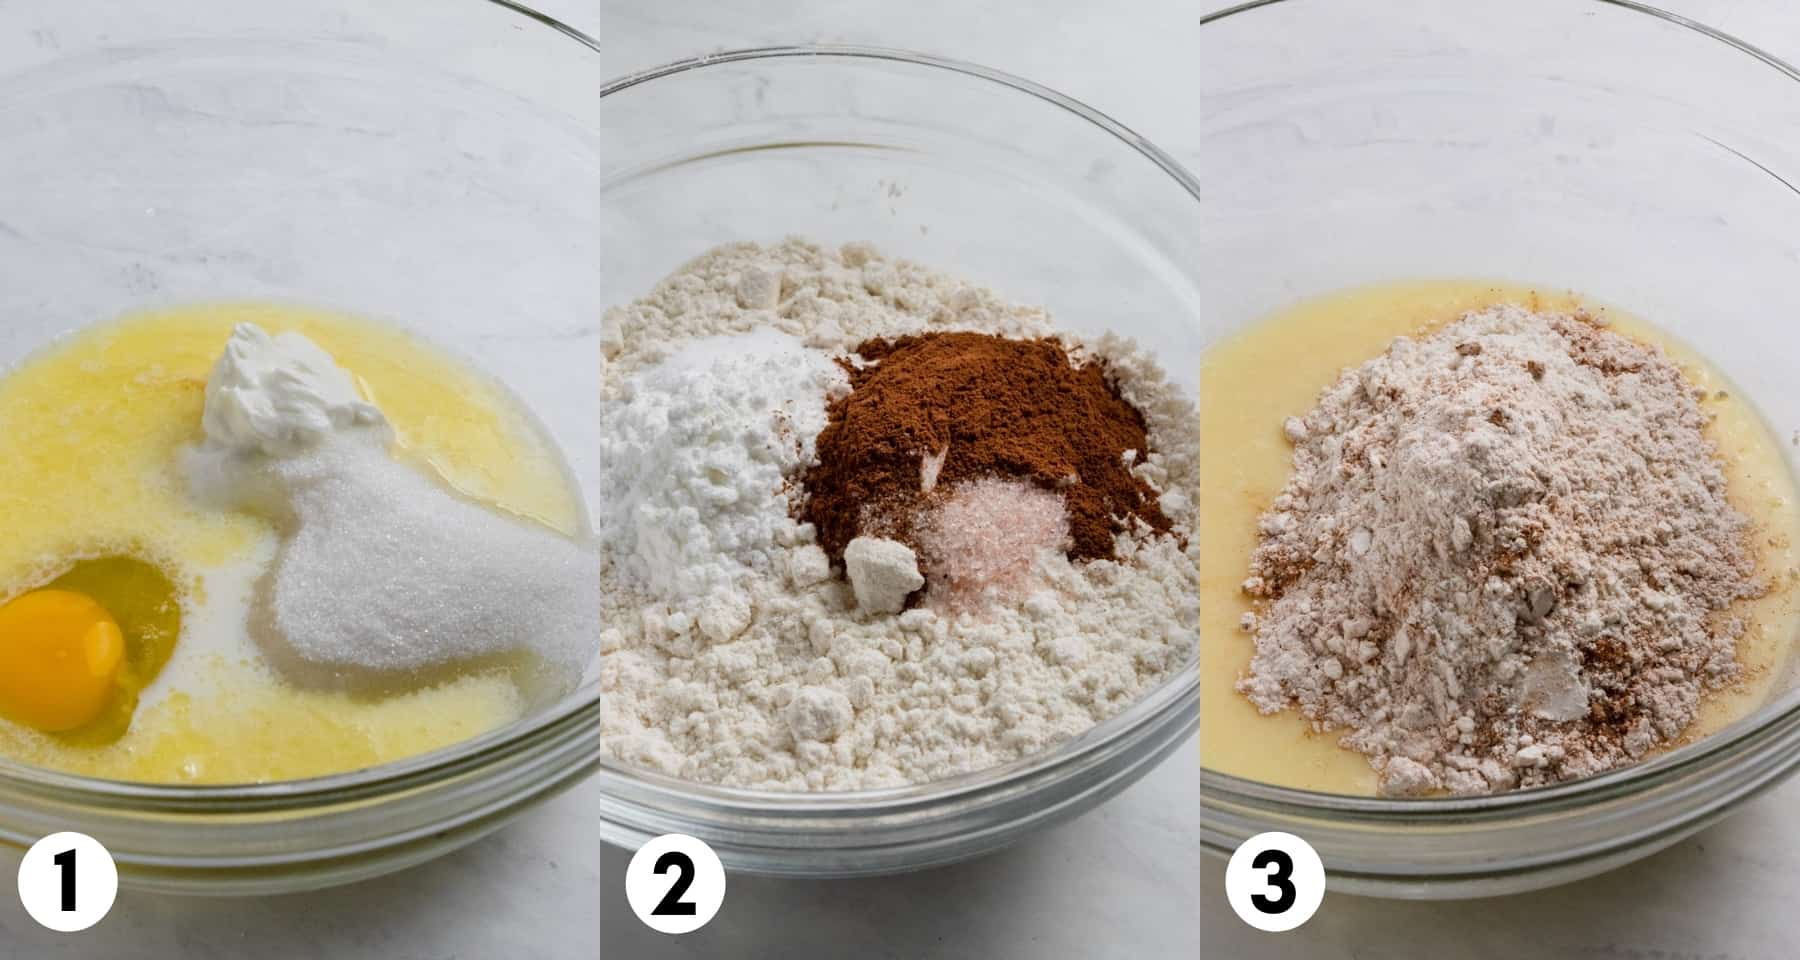 Eggs, sugar and ingredients in mixing bowl